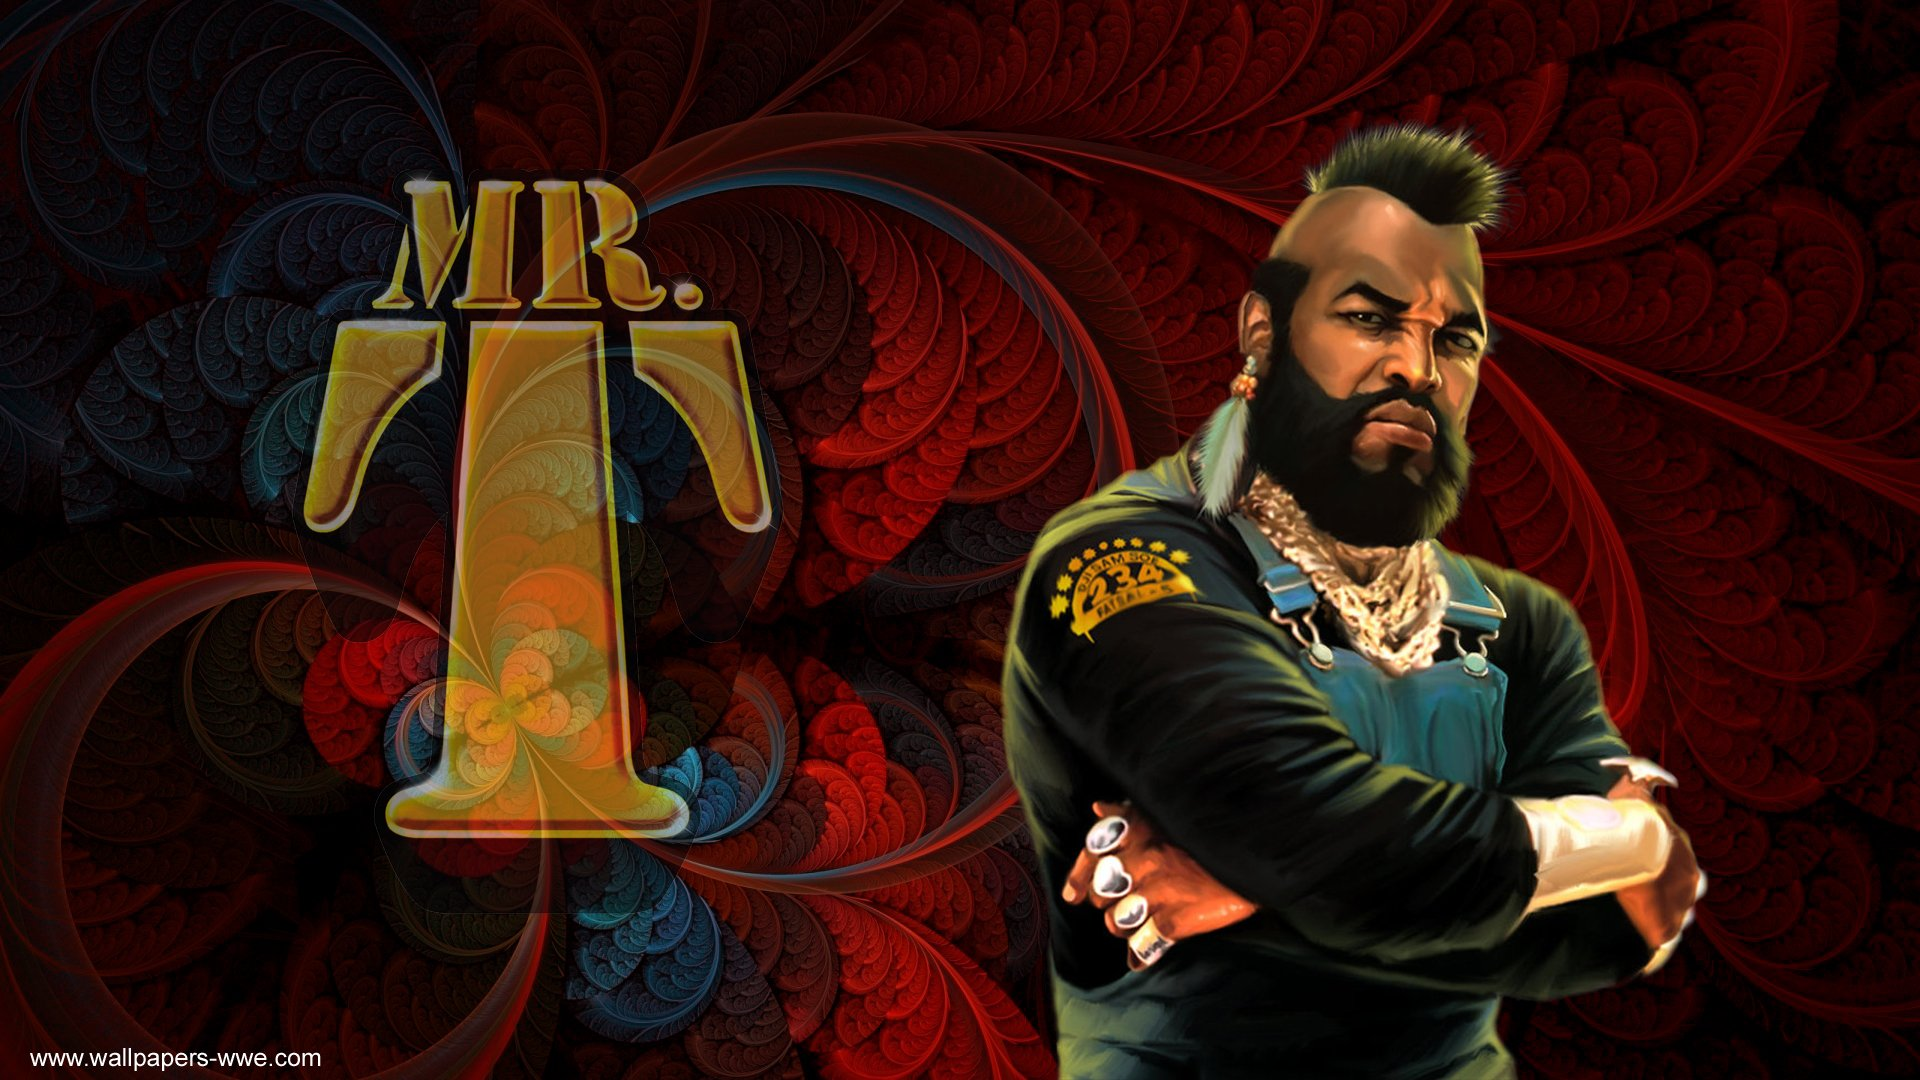 1920x1080 - Mr. T Wallpapers 4